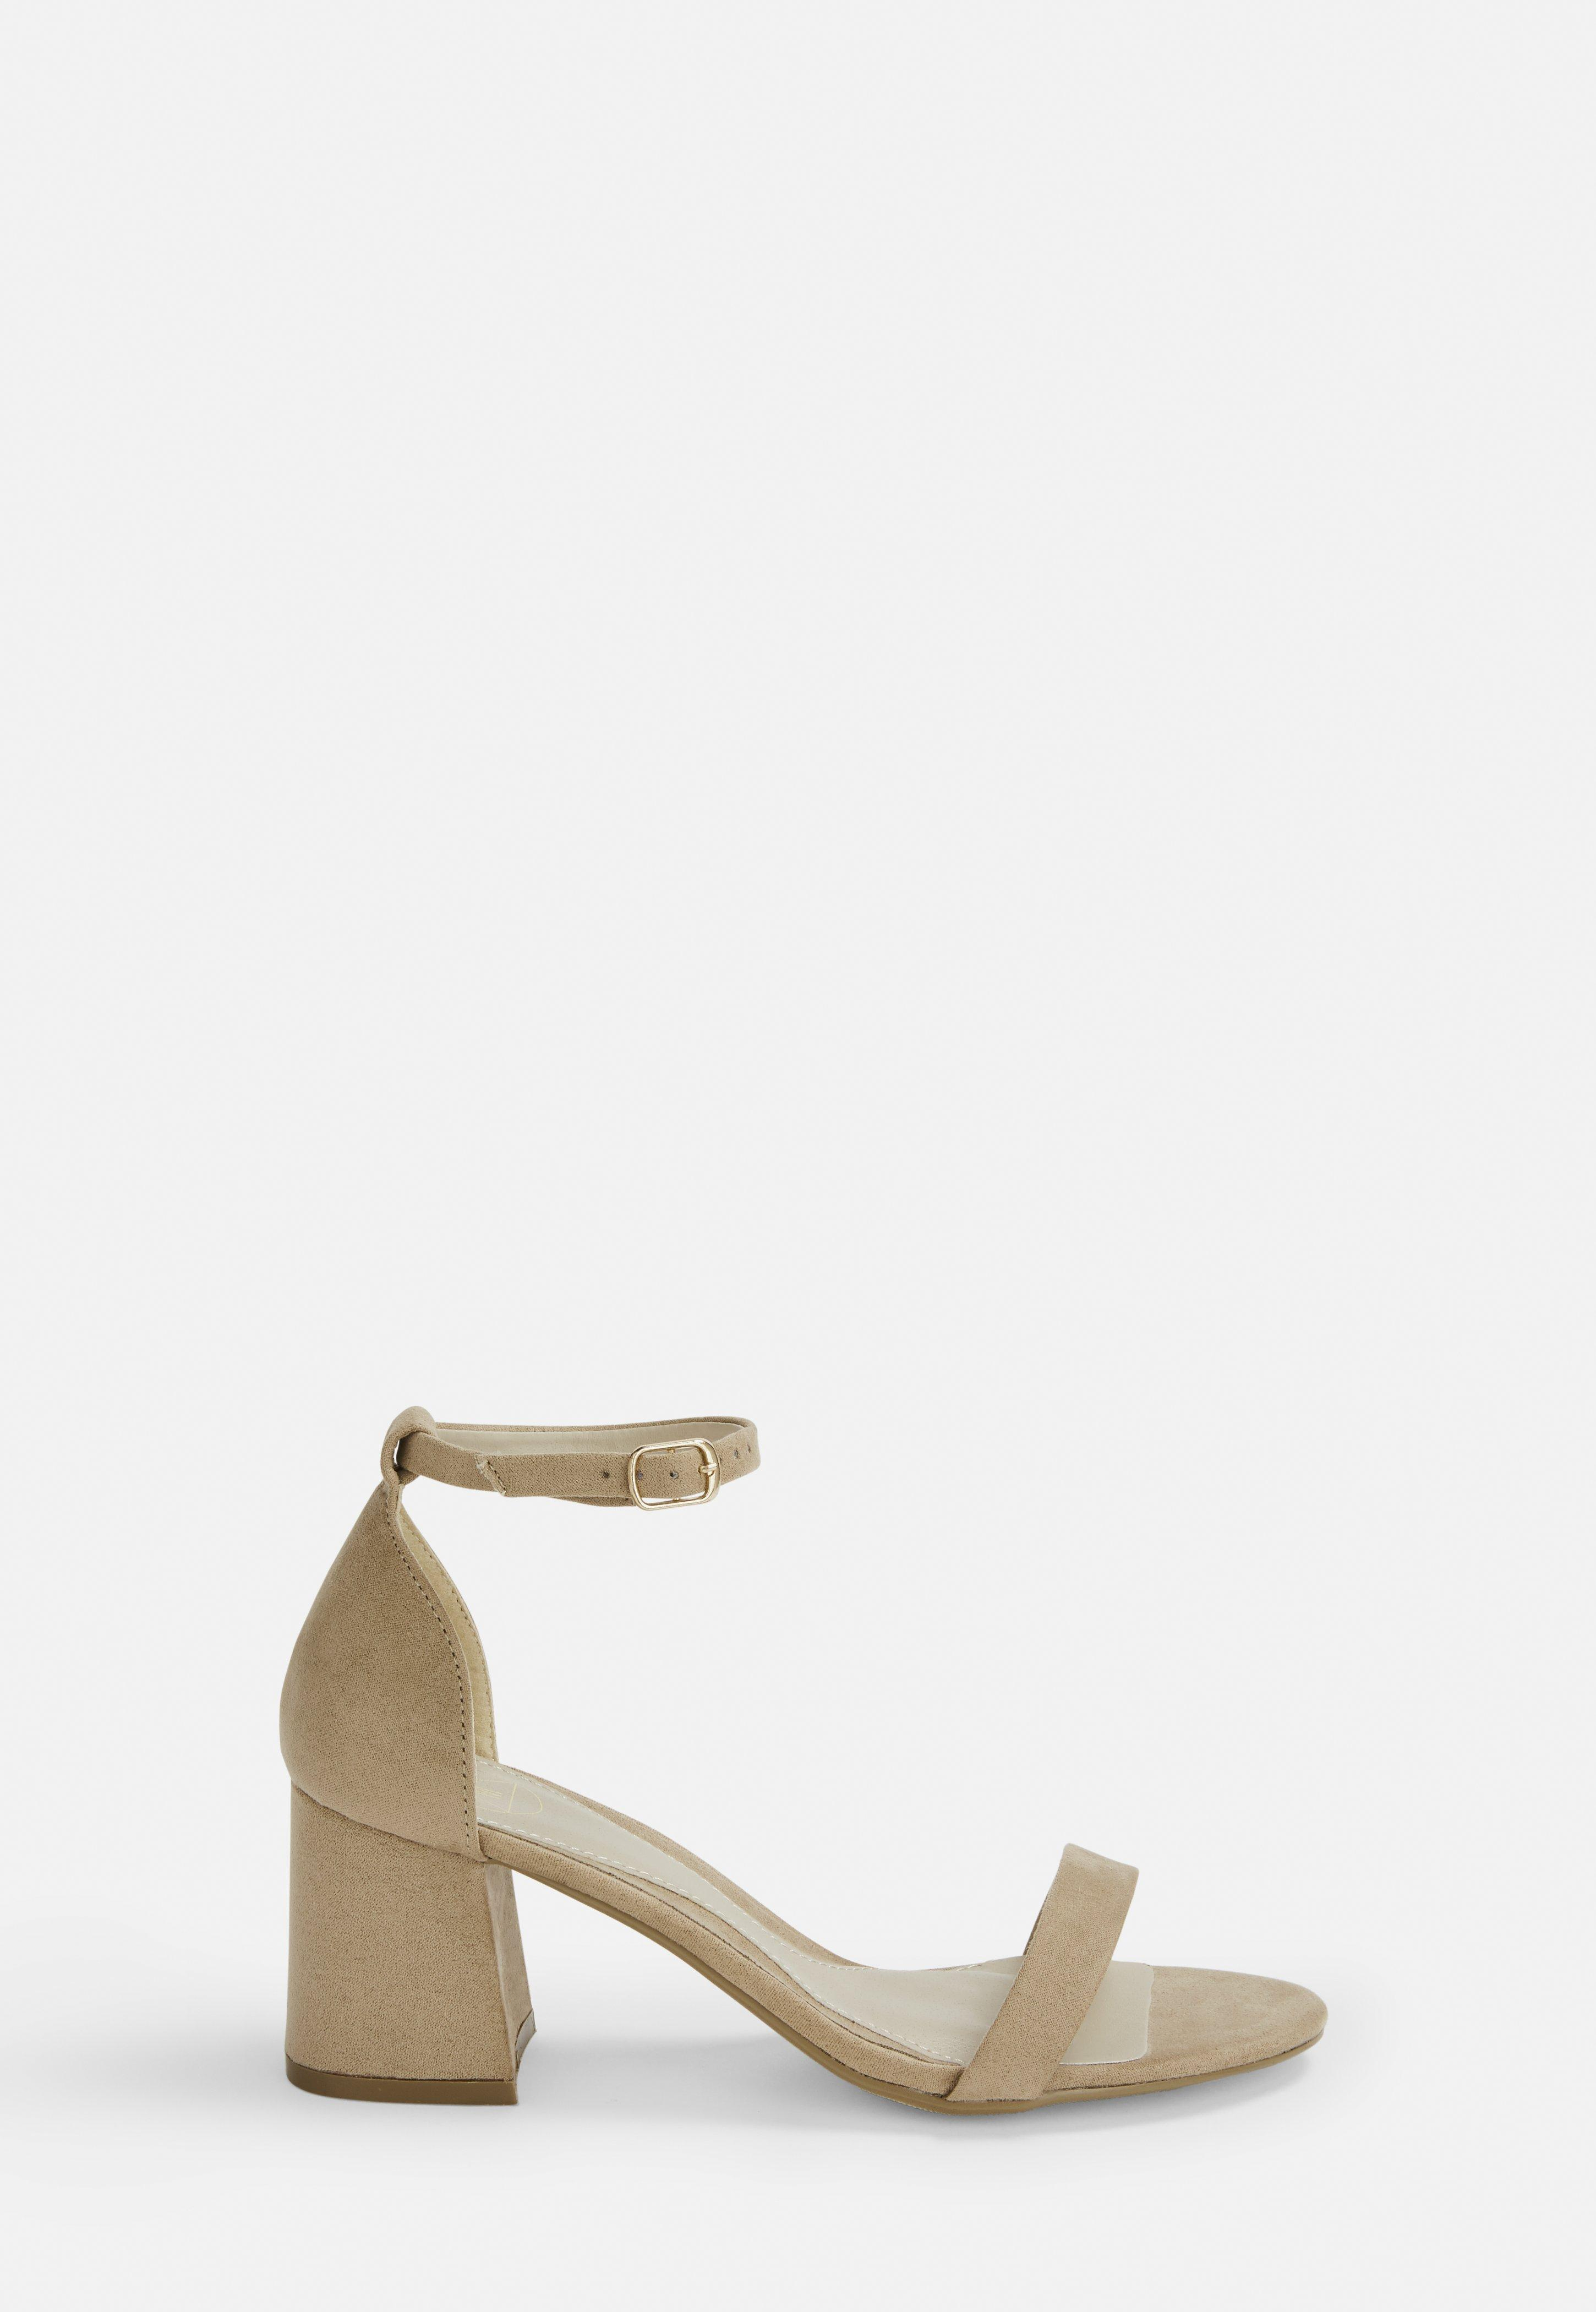 c1e4c430a9d Nude Block Barely There Mid Heels